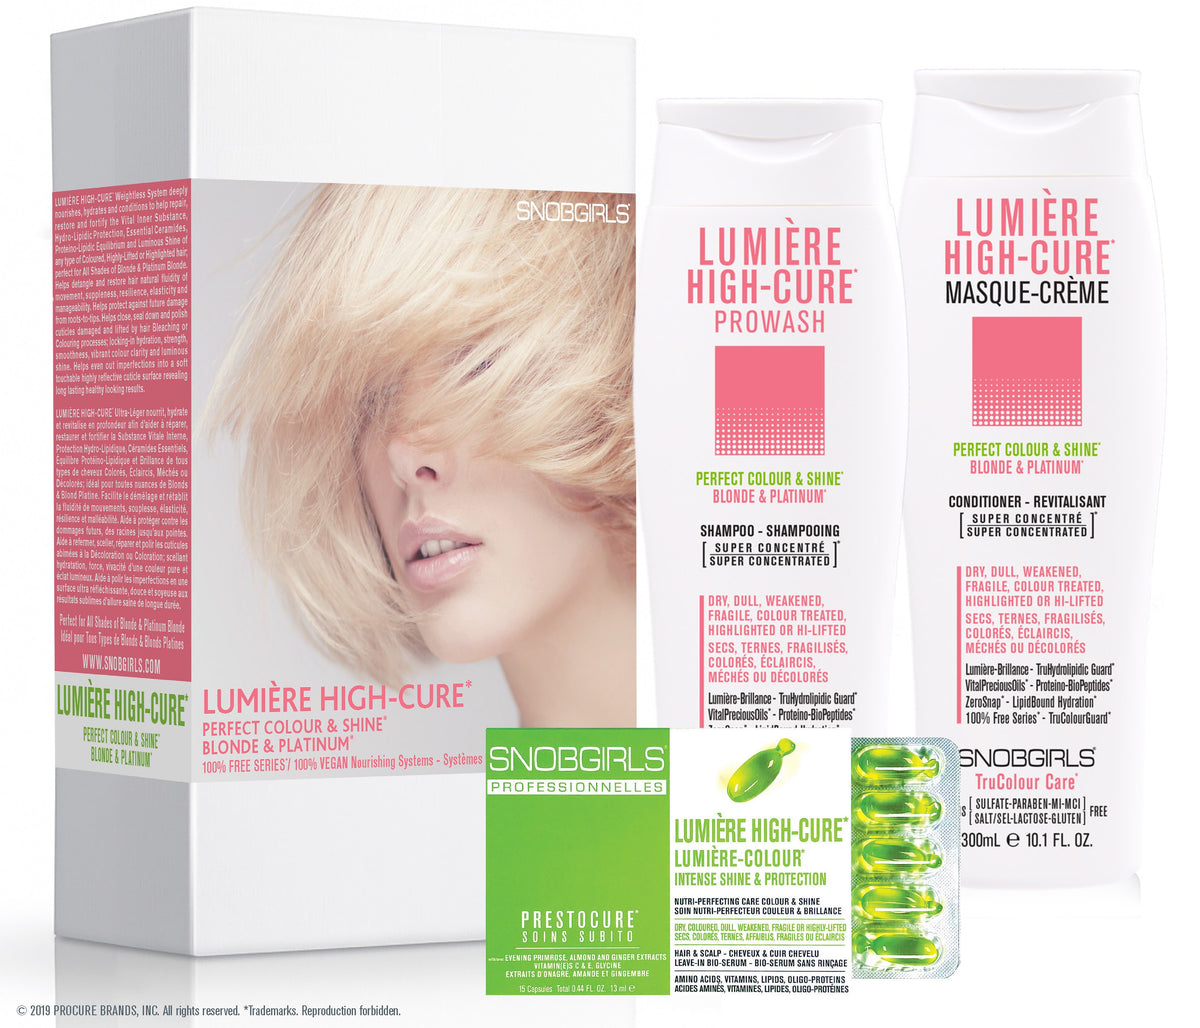 GIFT SETS- 3 X  Trio LUMIERE HIGH-CURE Perfect Colour & Shine + Detoxcure Prowash Liter - SNOBGIRLS.com